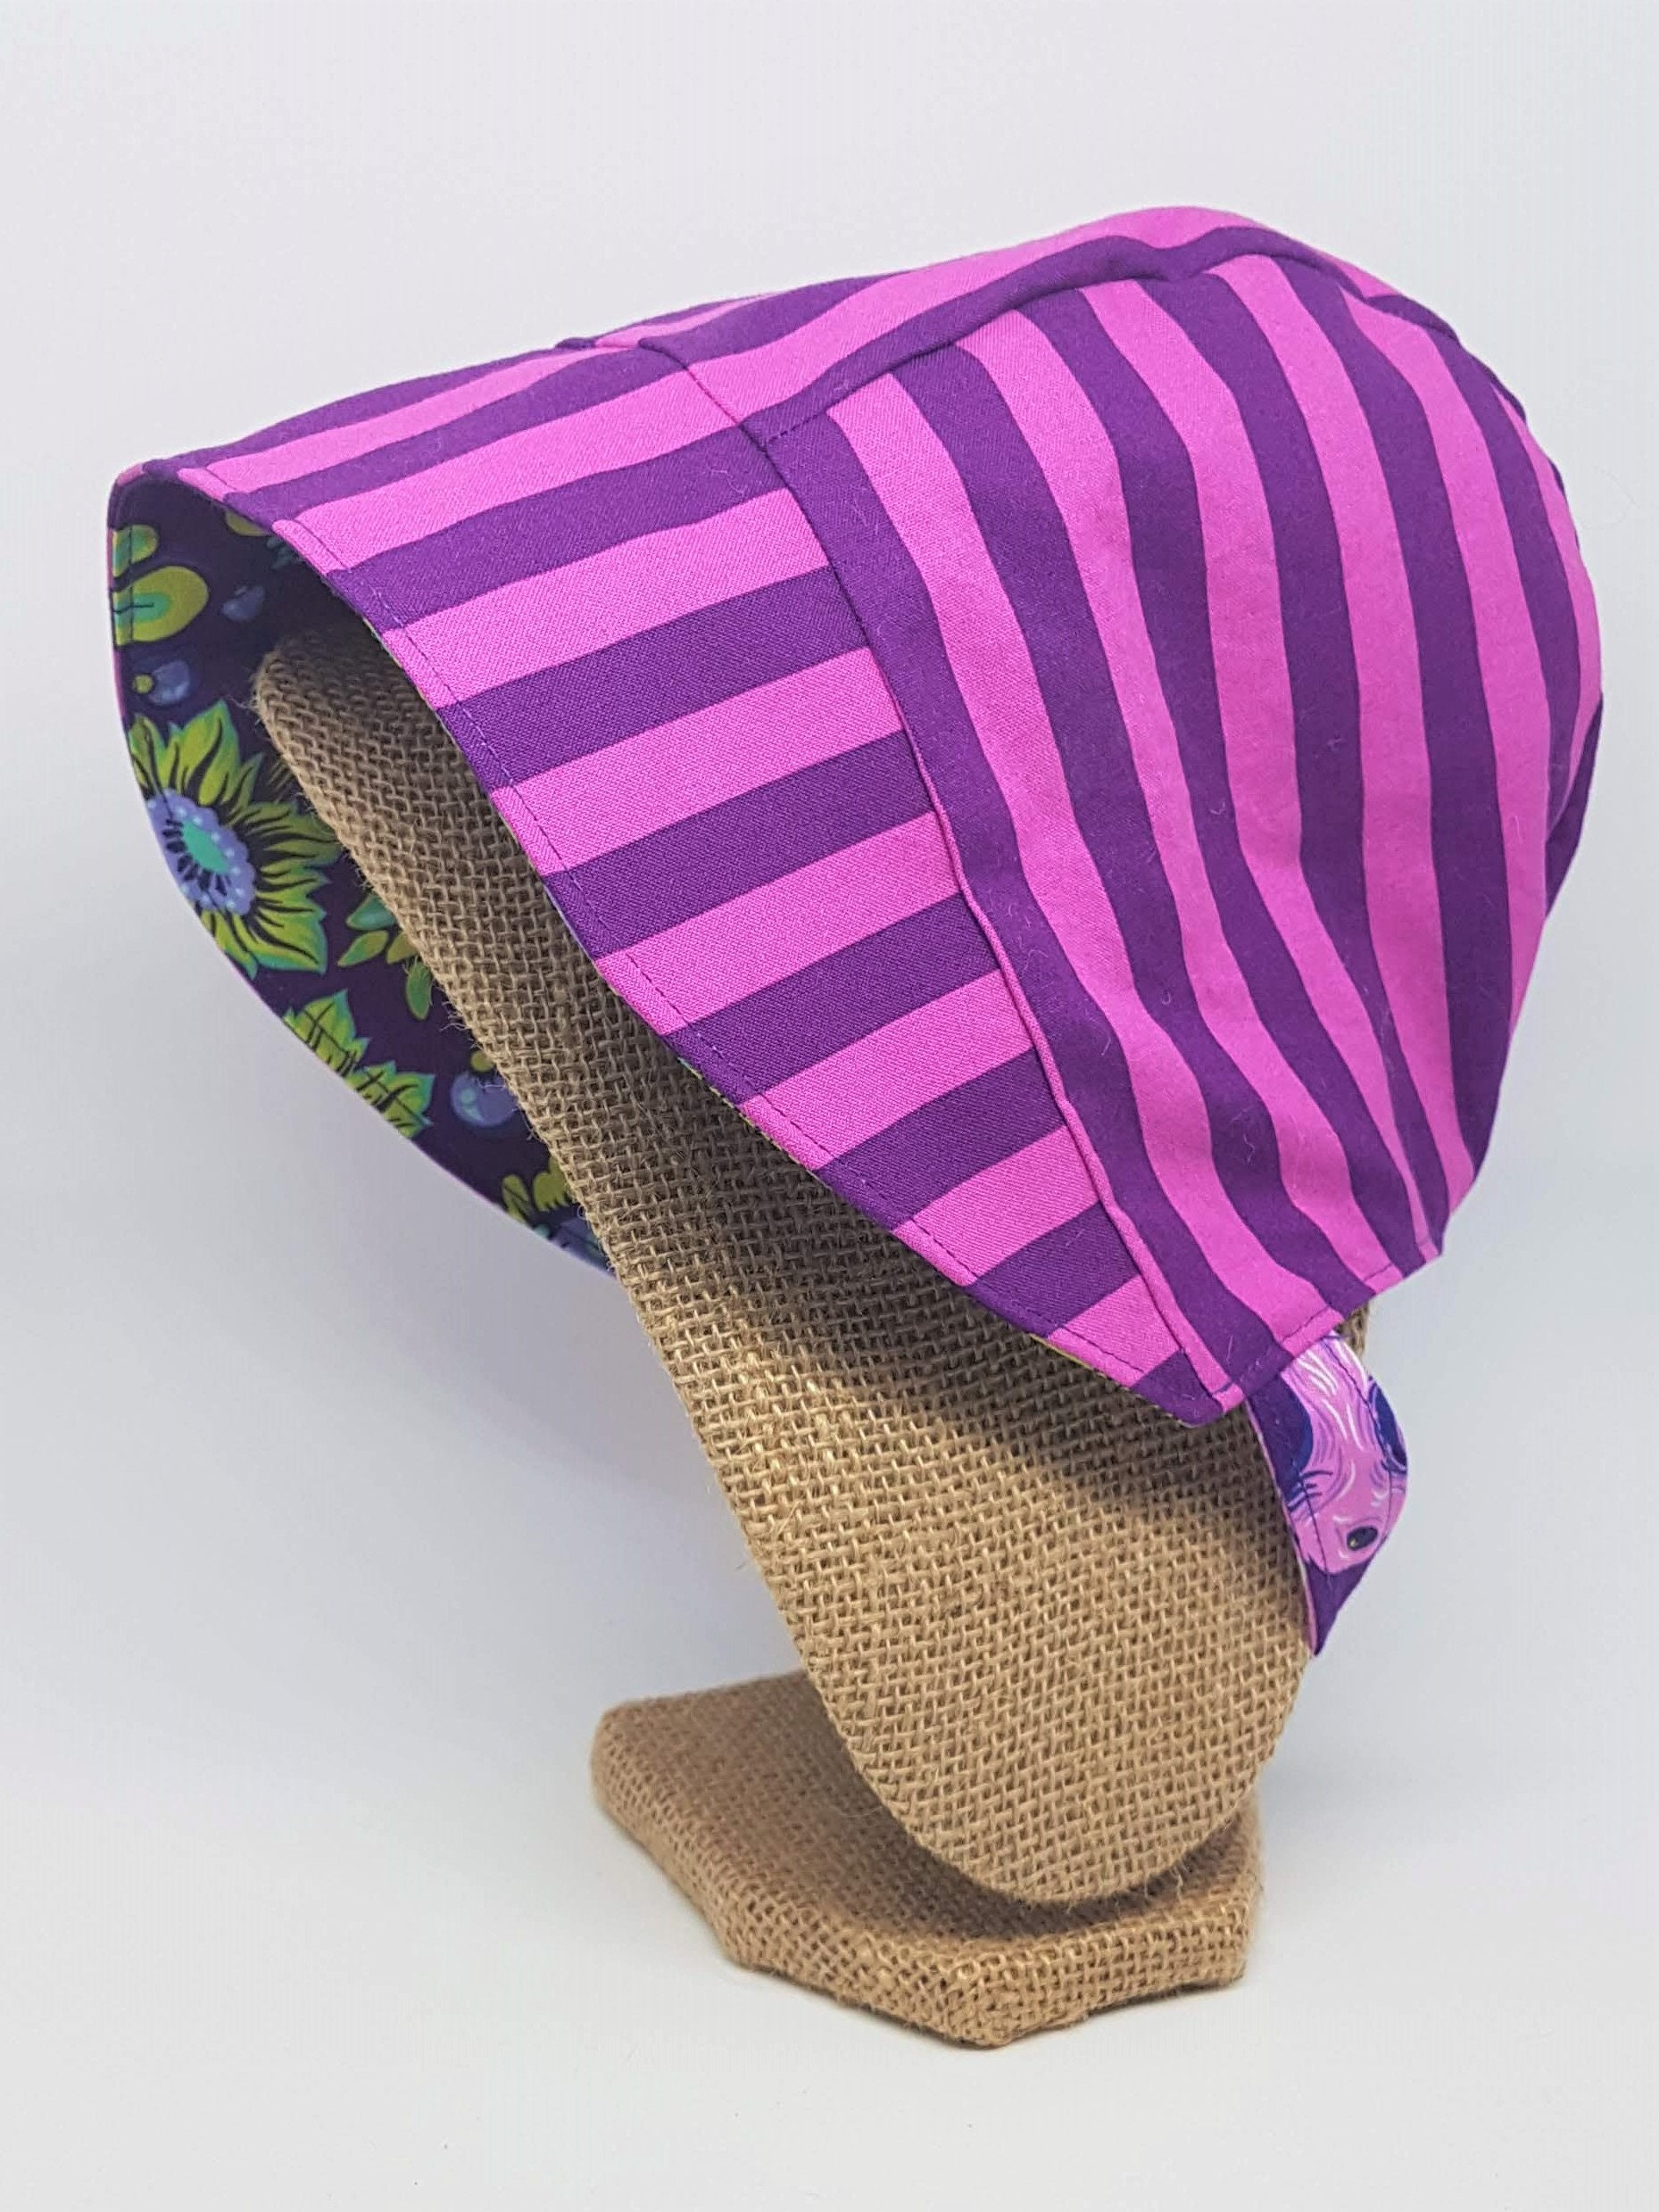 2b6ef2ab1b2f27 Baby Sun Bonnet - Reversible Sun Hat - Available from Size Newborn ...